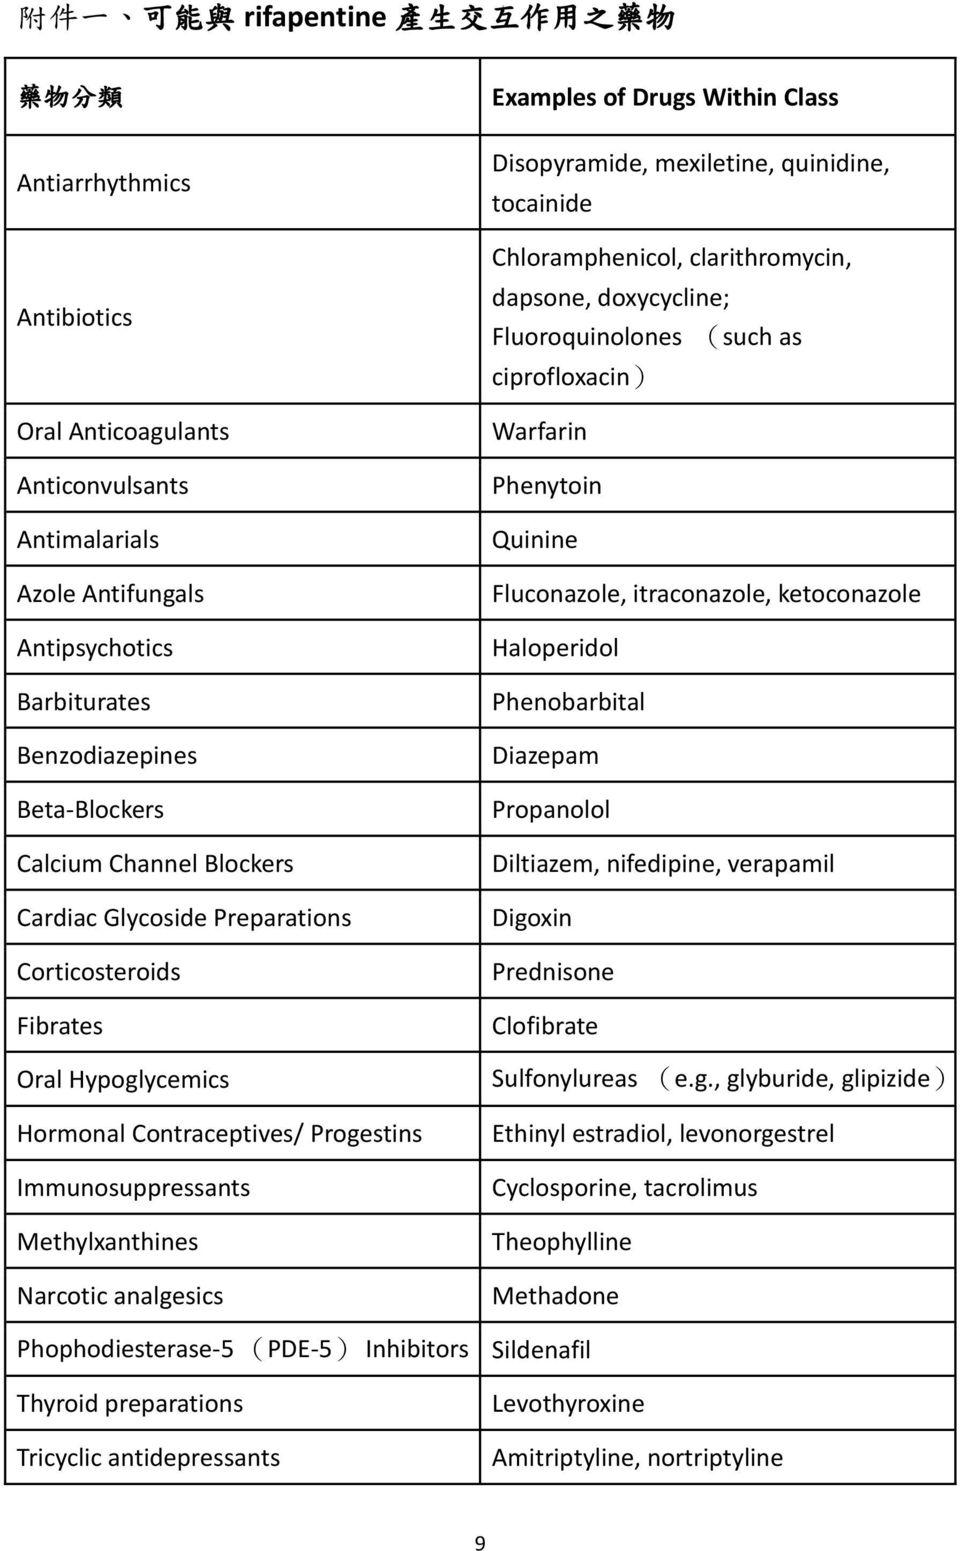 analgesics Examples of Drugs Within Class Disopyramide, mexiletine, quinidine, tocainide Chloramphenicol, clarithromycin, dapsone, doxycycline; Fluoroquinolones (such as ciprofloxacin) Warfarin